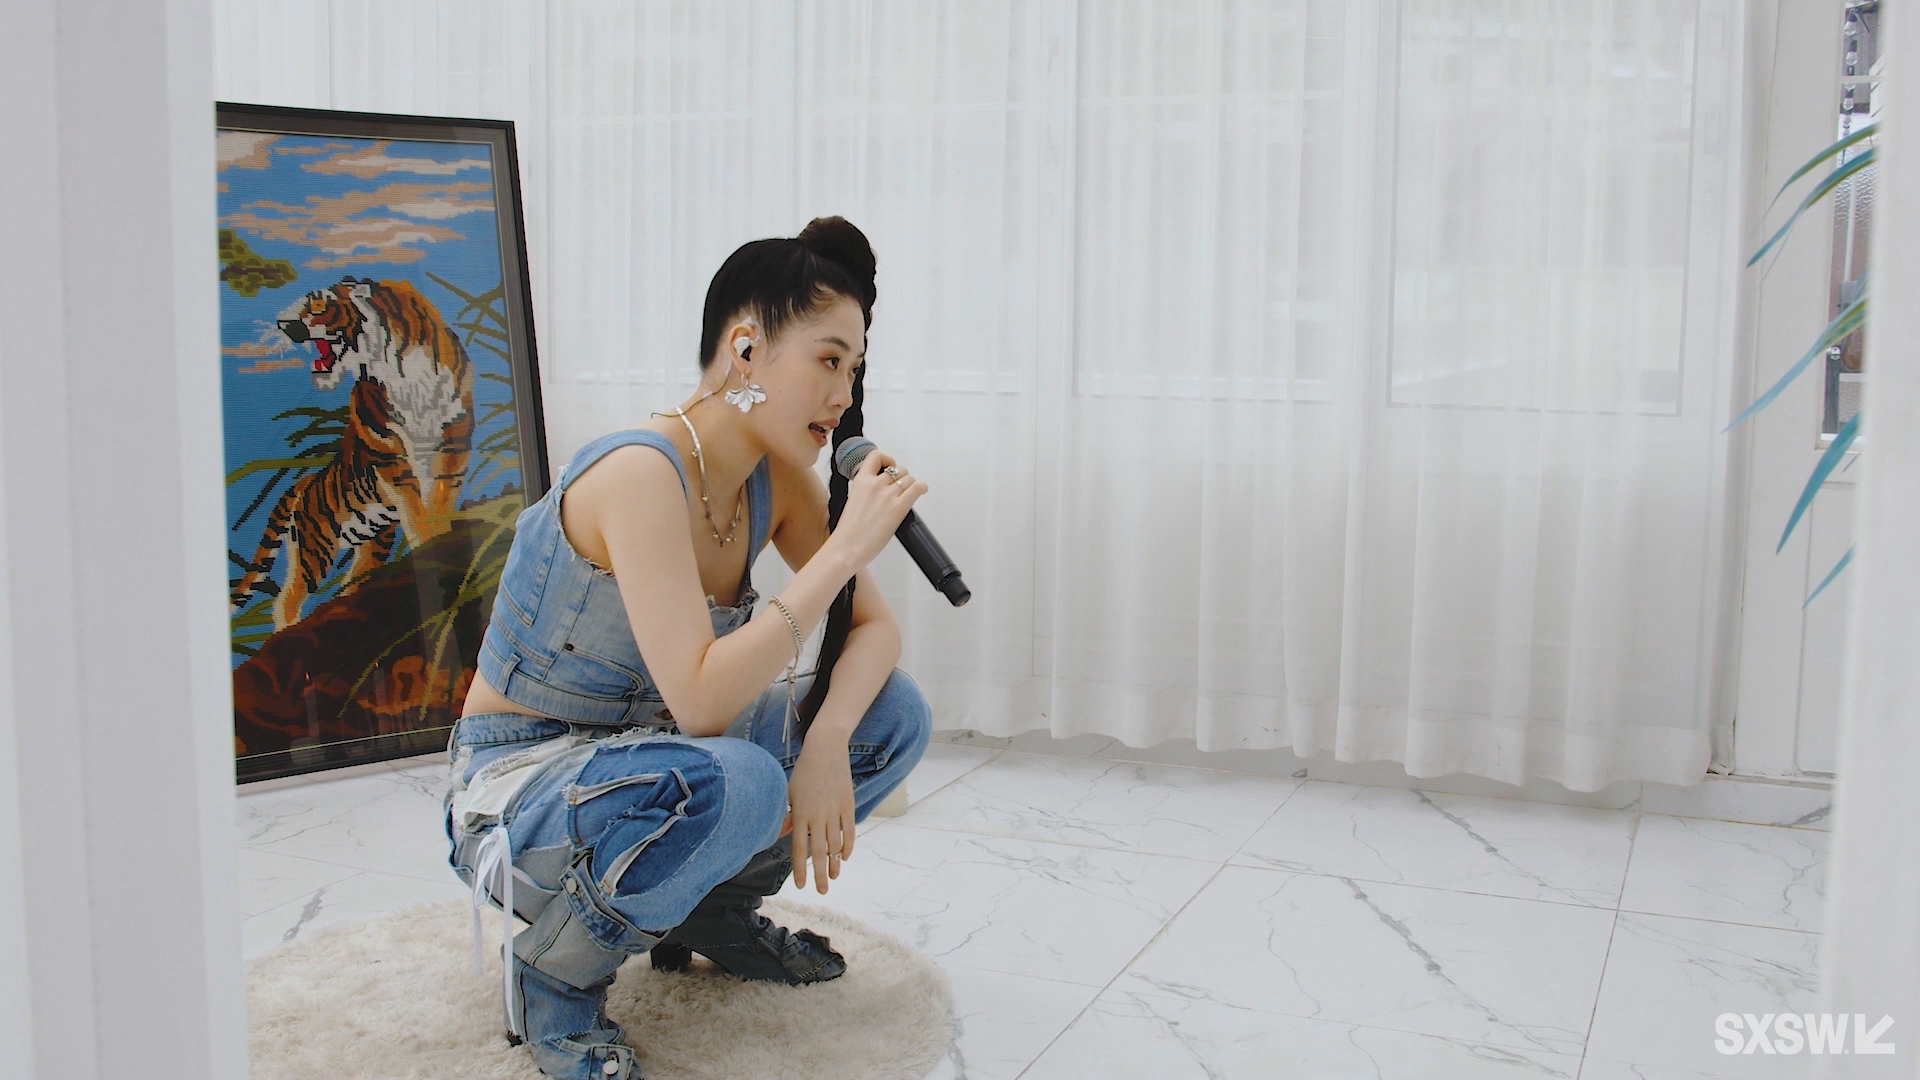 Devita performs at the SXSW Music Festival showcase presented by Beatbites presents AOMG during SXSW Online on March 20, 2021.